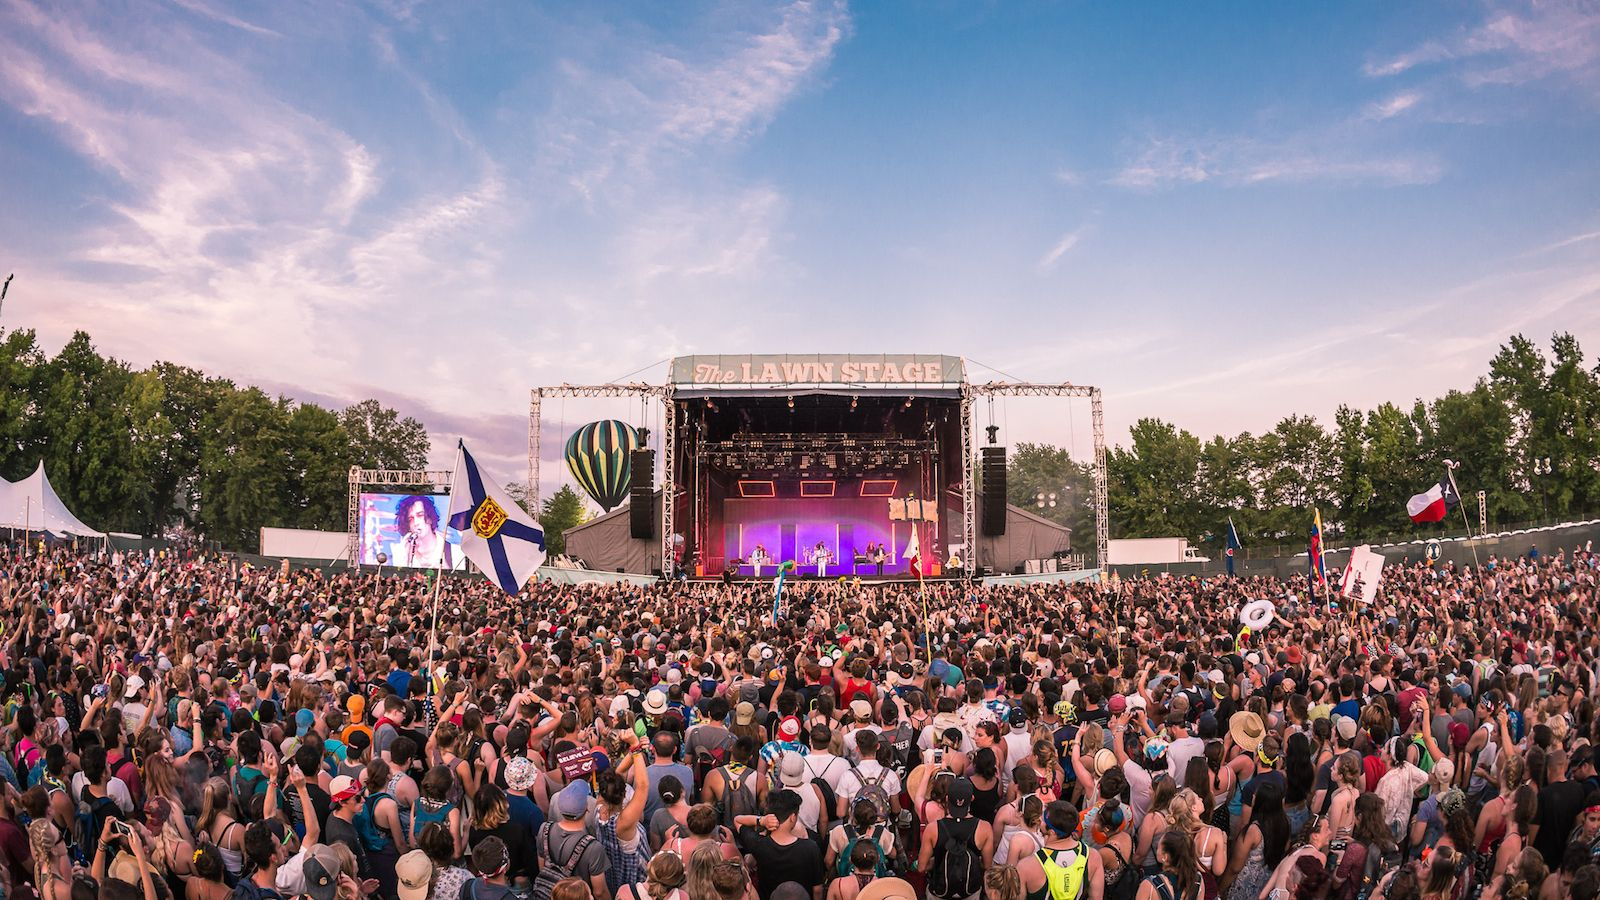 36 Photos of Festies Loving Life at Firefly Music Festival | Everfest